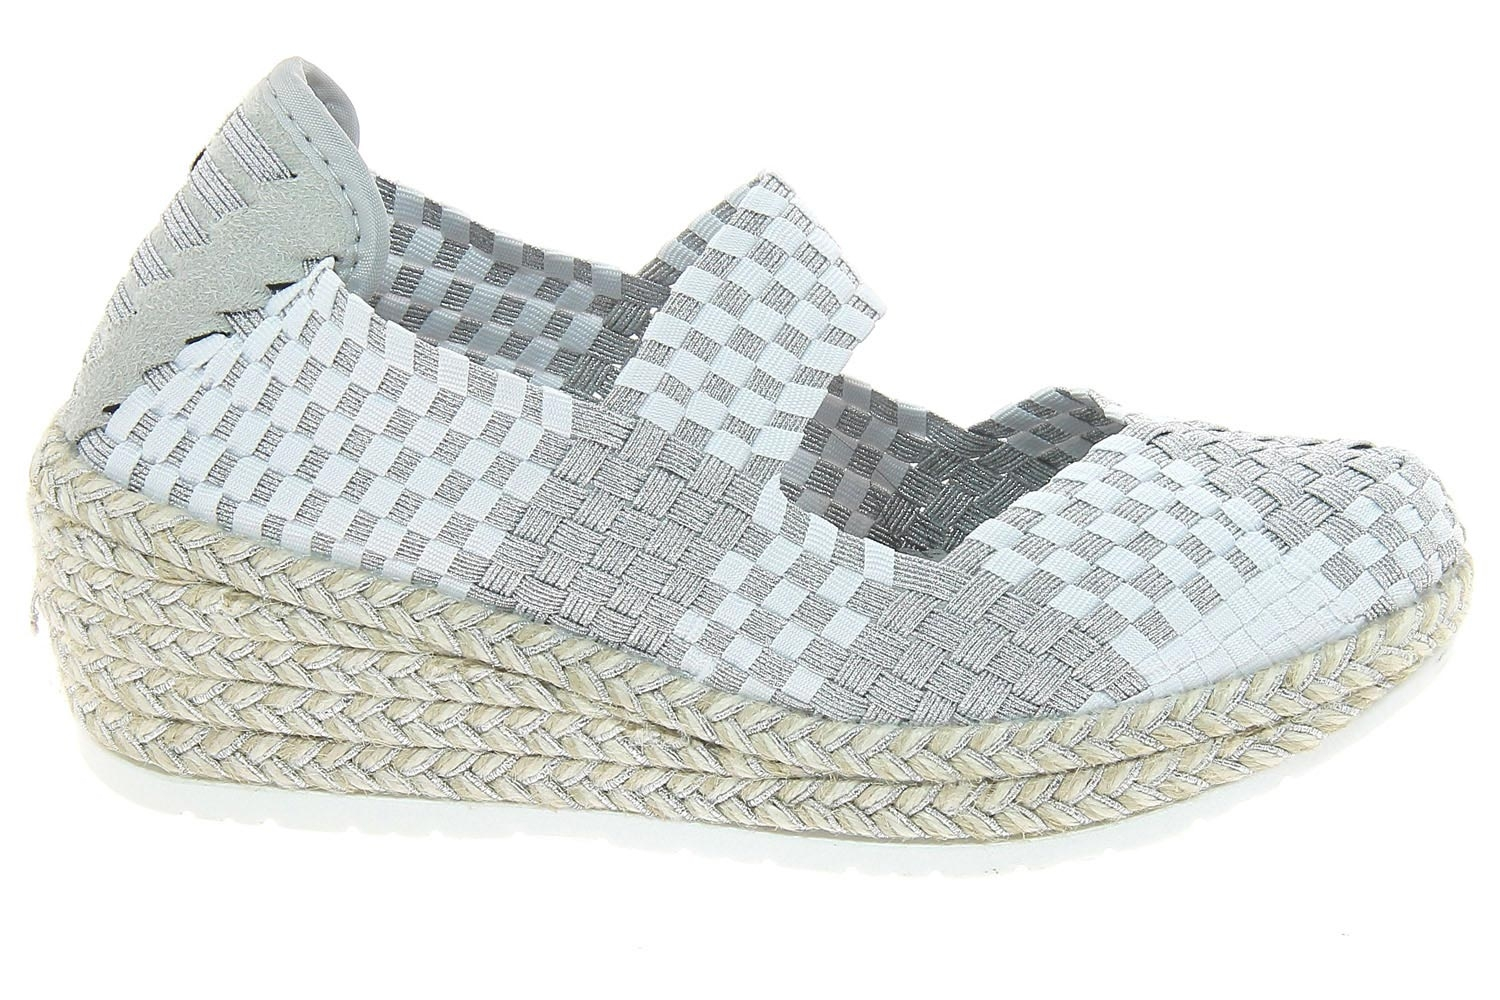 Chaussures en toile coco abricot noir v0885a chaussures d